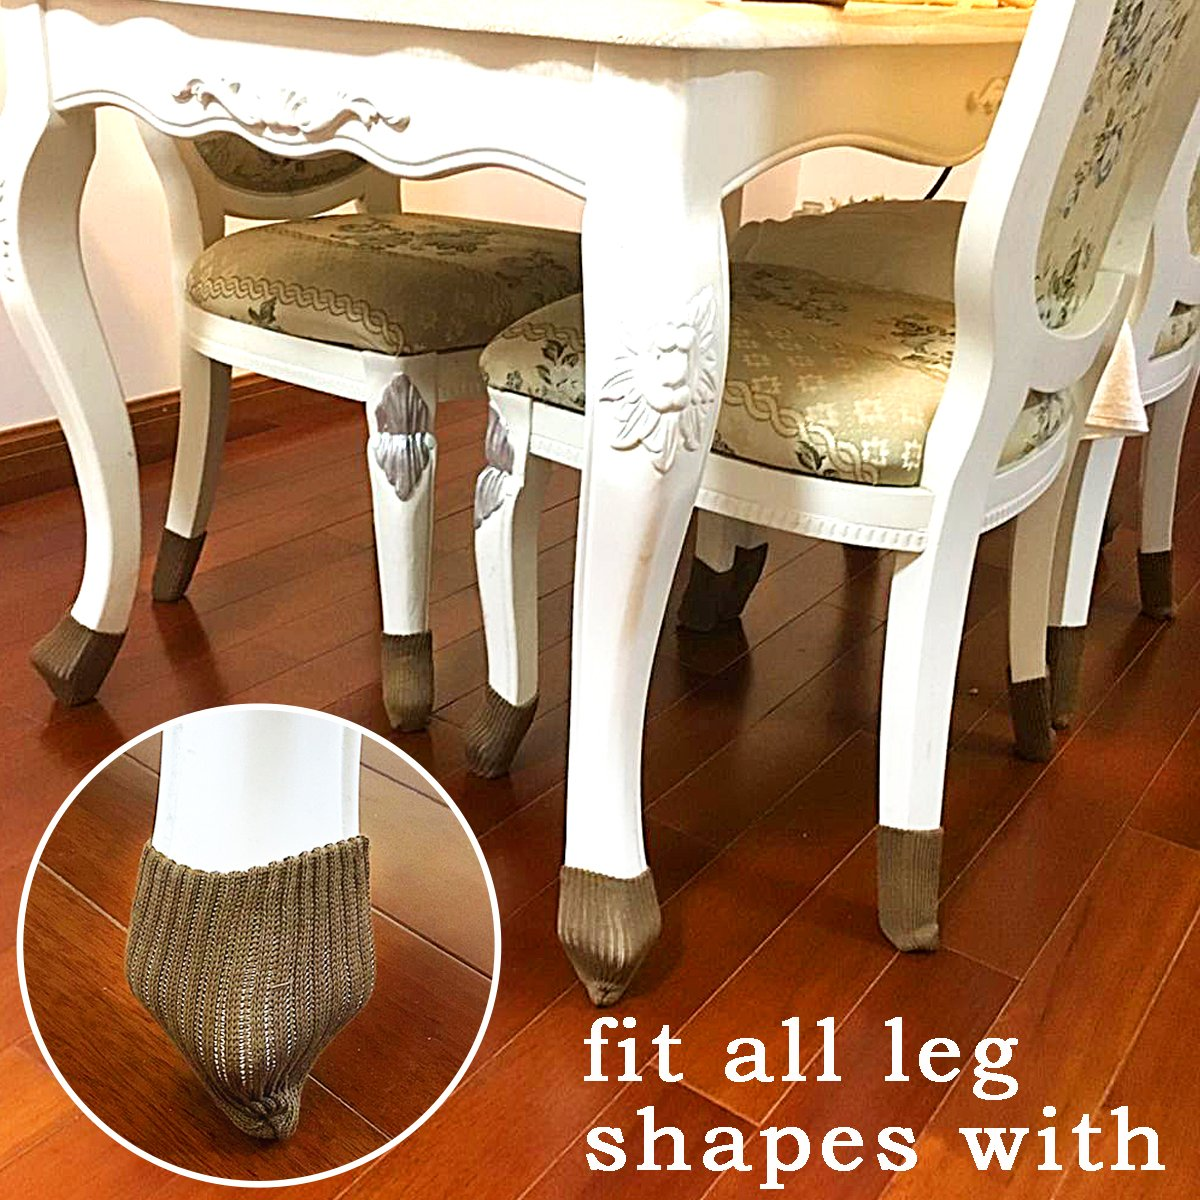 LimBridge 24pcs Chair Socks, Elastic Wood Floor Furniture Chair Leg Feet Protectors Covers Caps Set, Fit Girth from 4'' to 7'', Vertical Knitted Brown